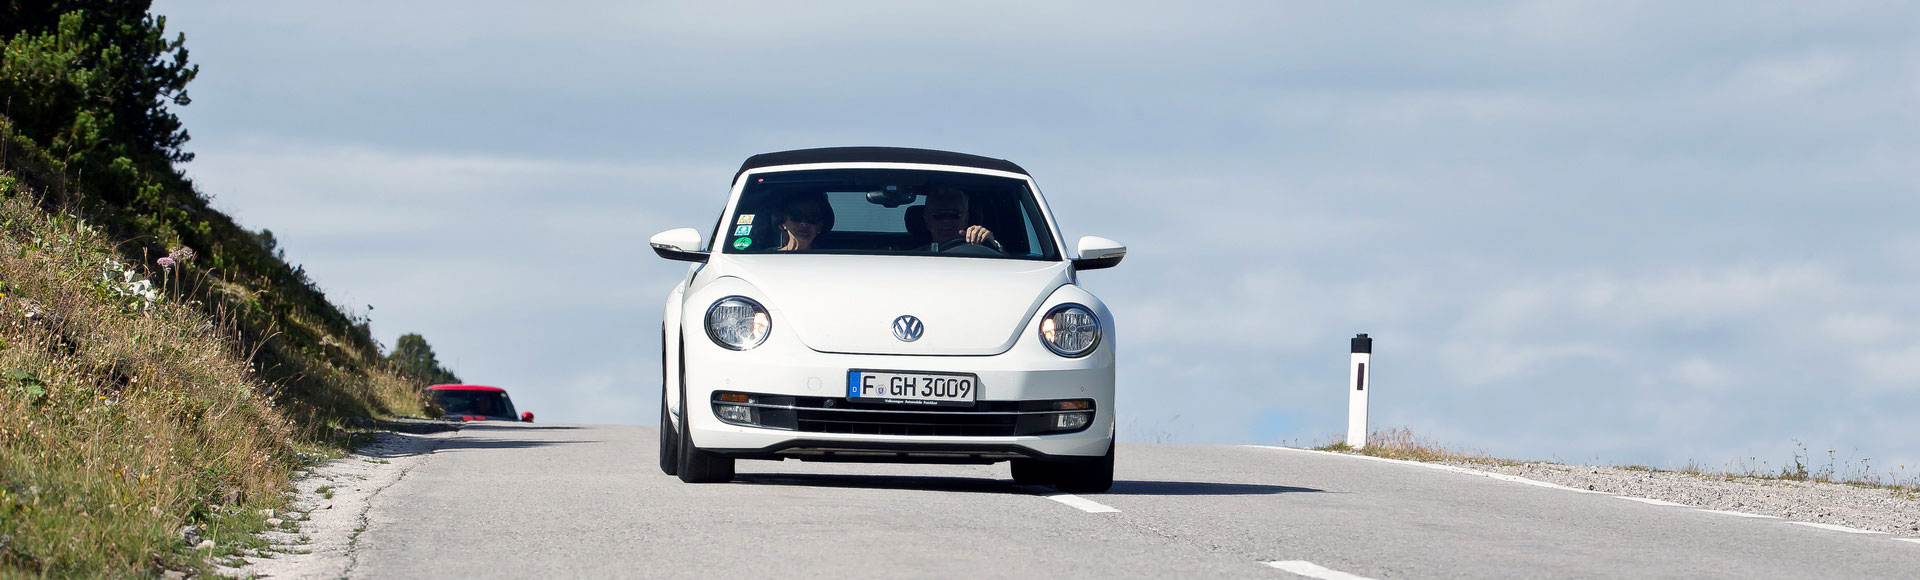 VW Beetle Cabrio 2015 0417 Sommer